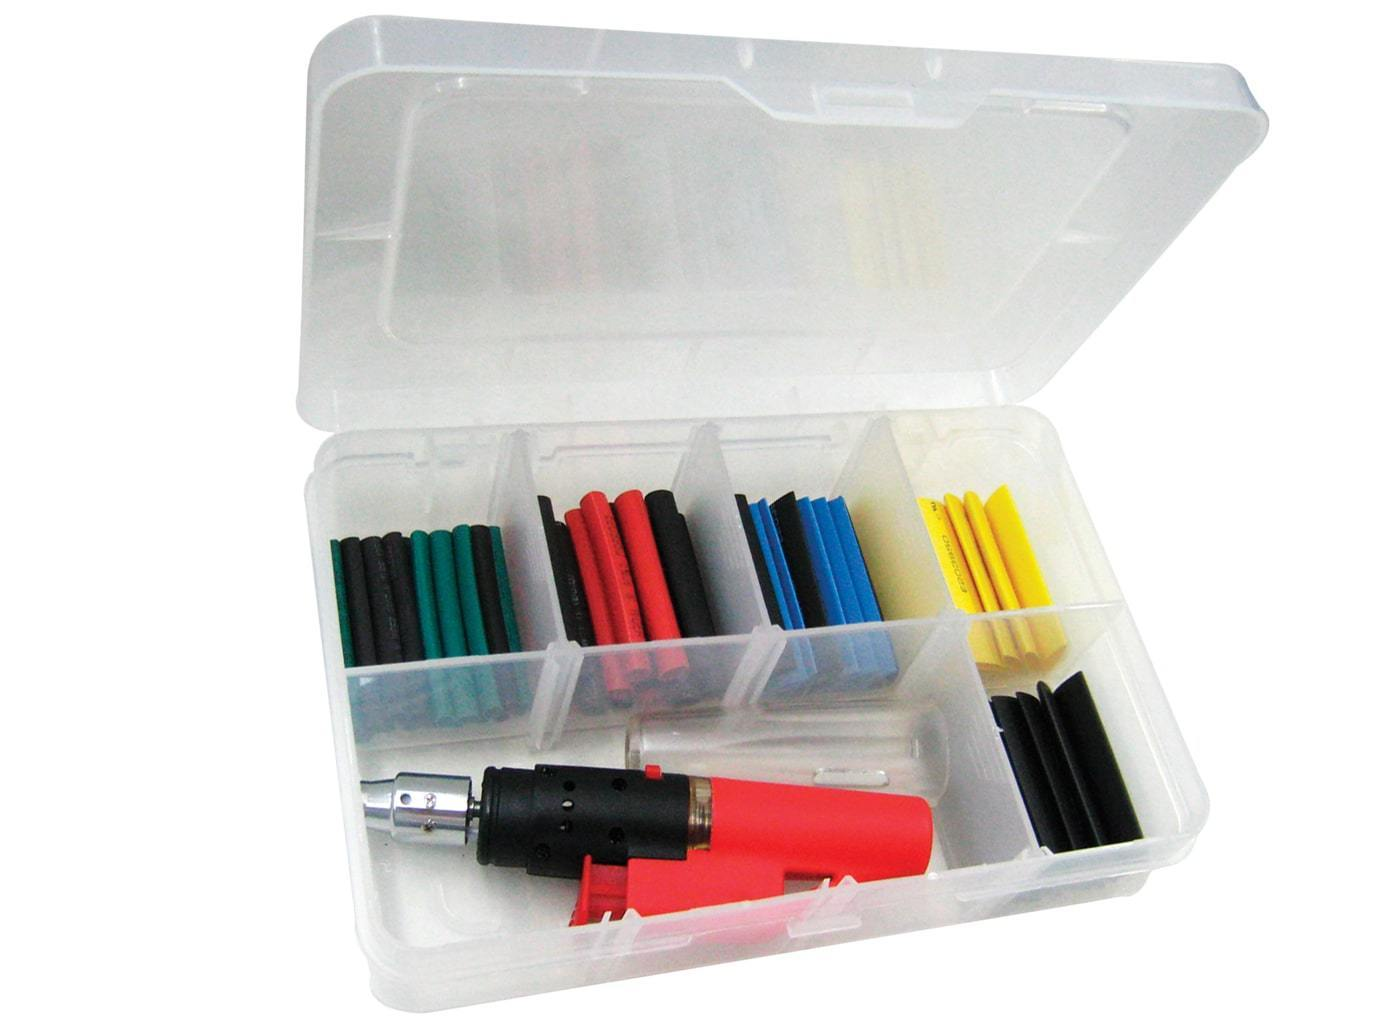 heat-shrink-tube-kit-with-gas-torch-65pc